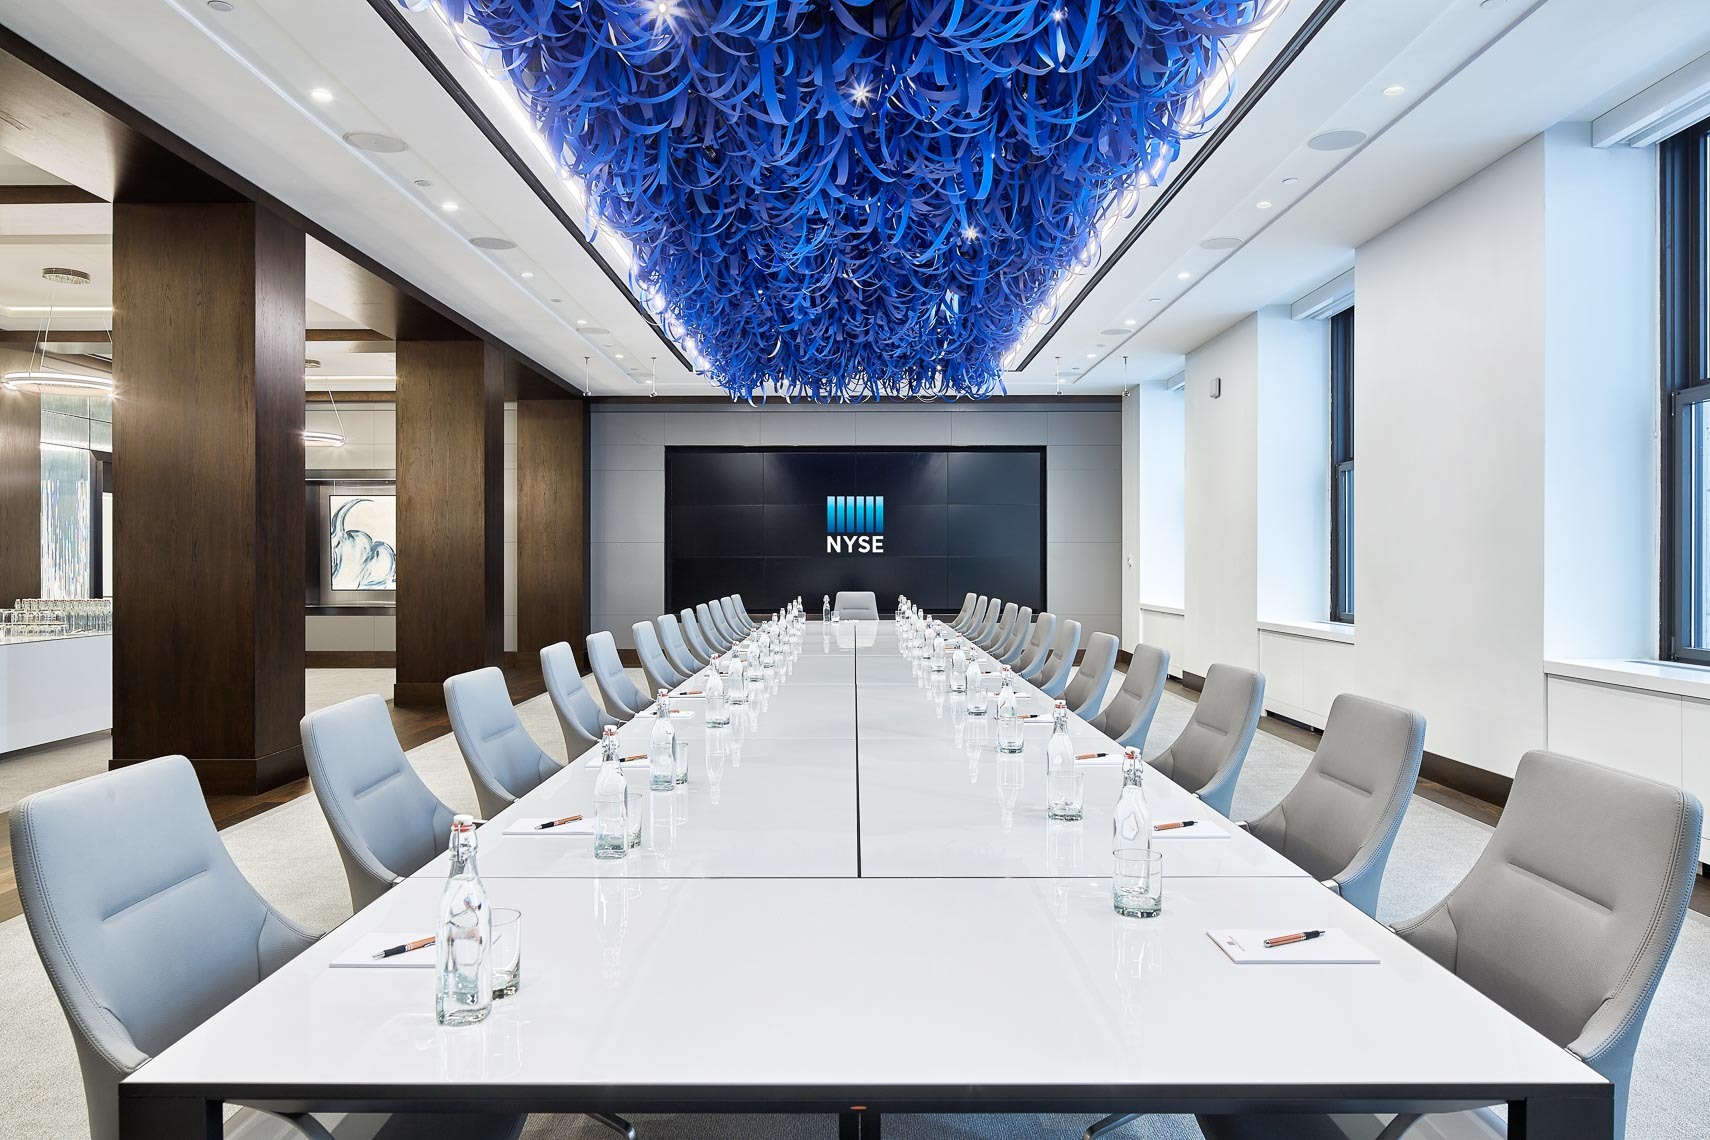 Wide straight view of large conference room table with blue decoration on ceiling